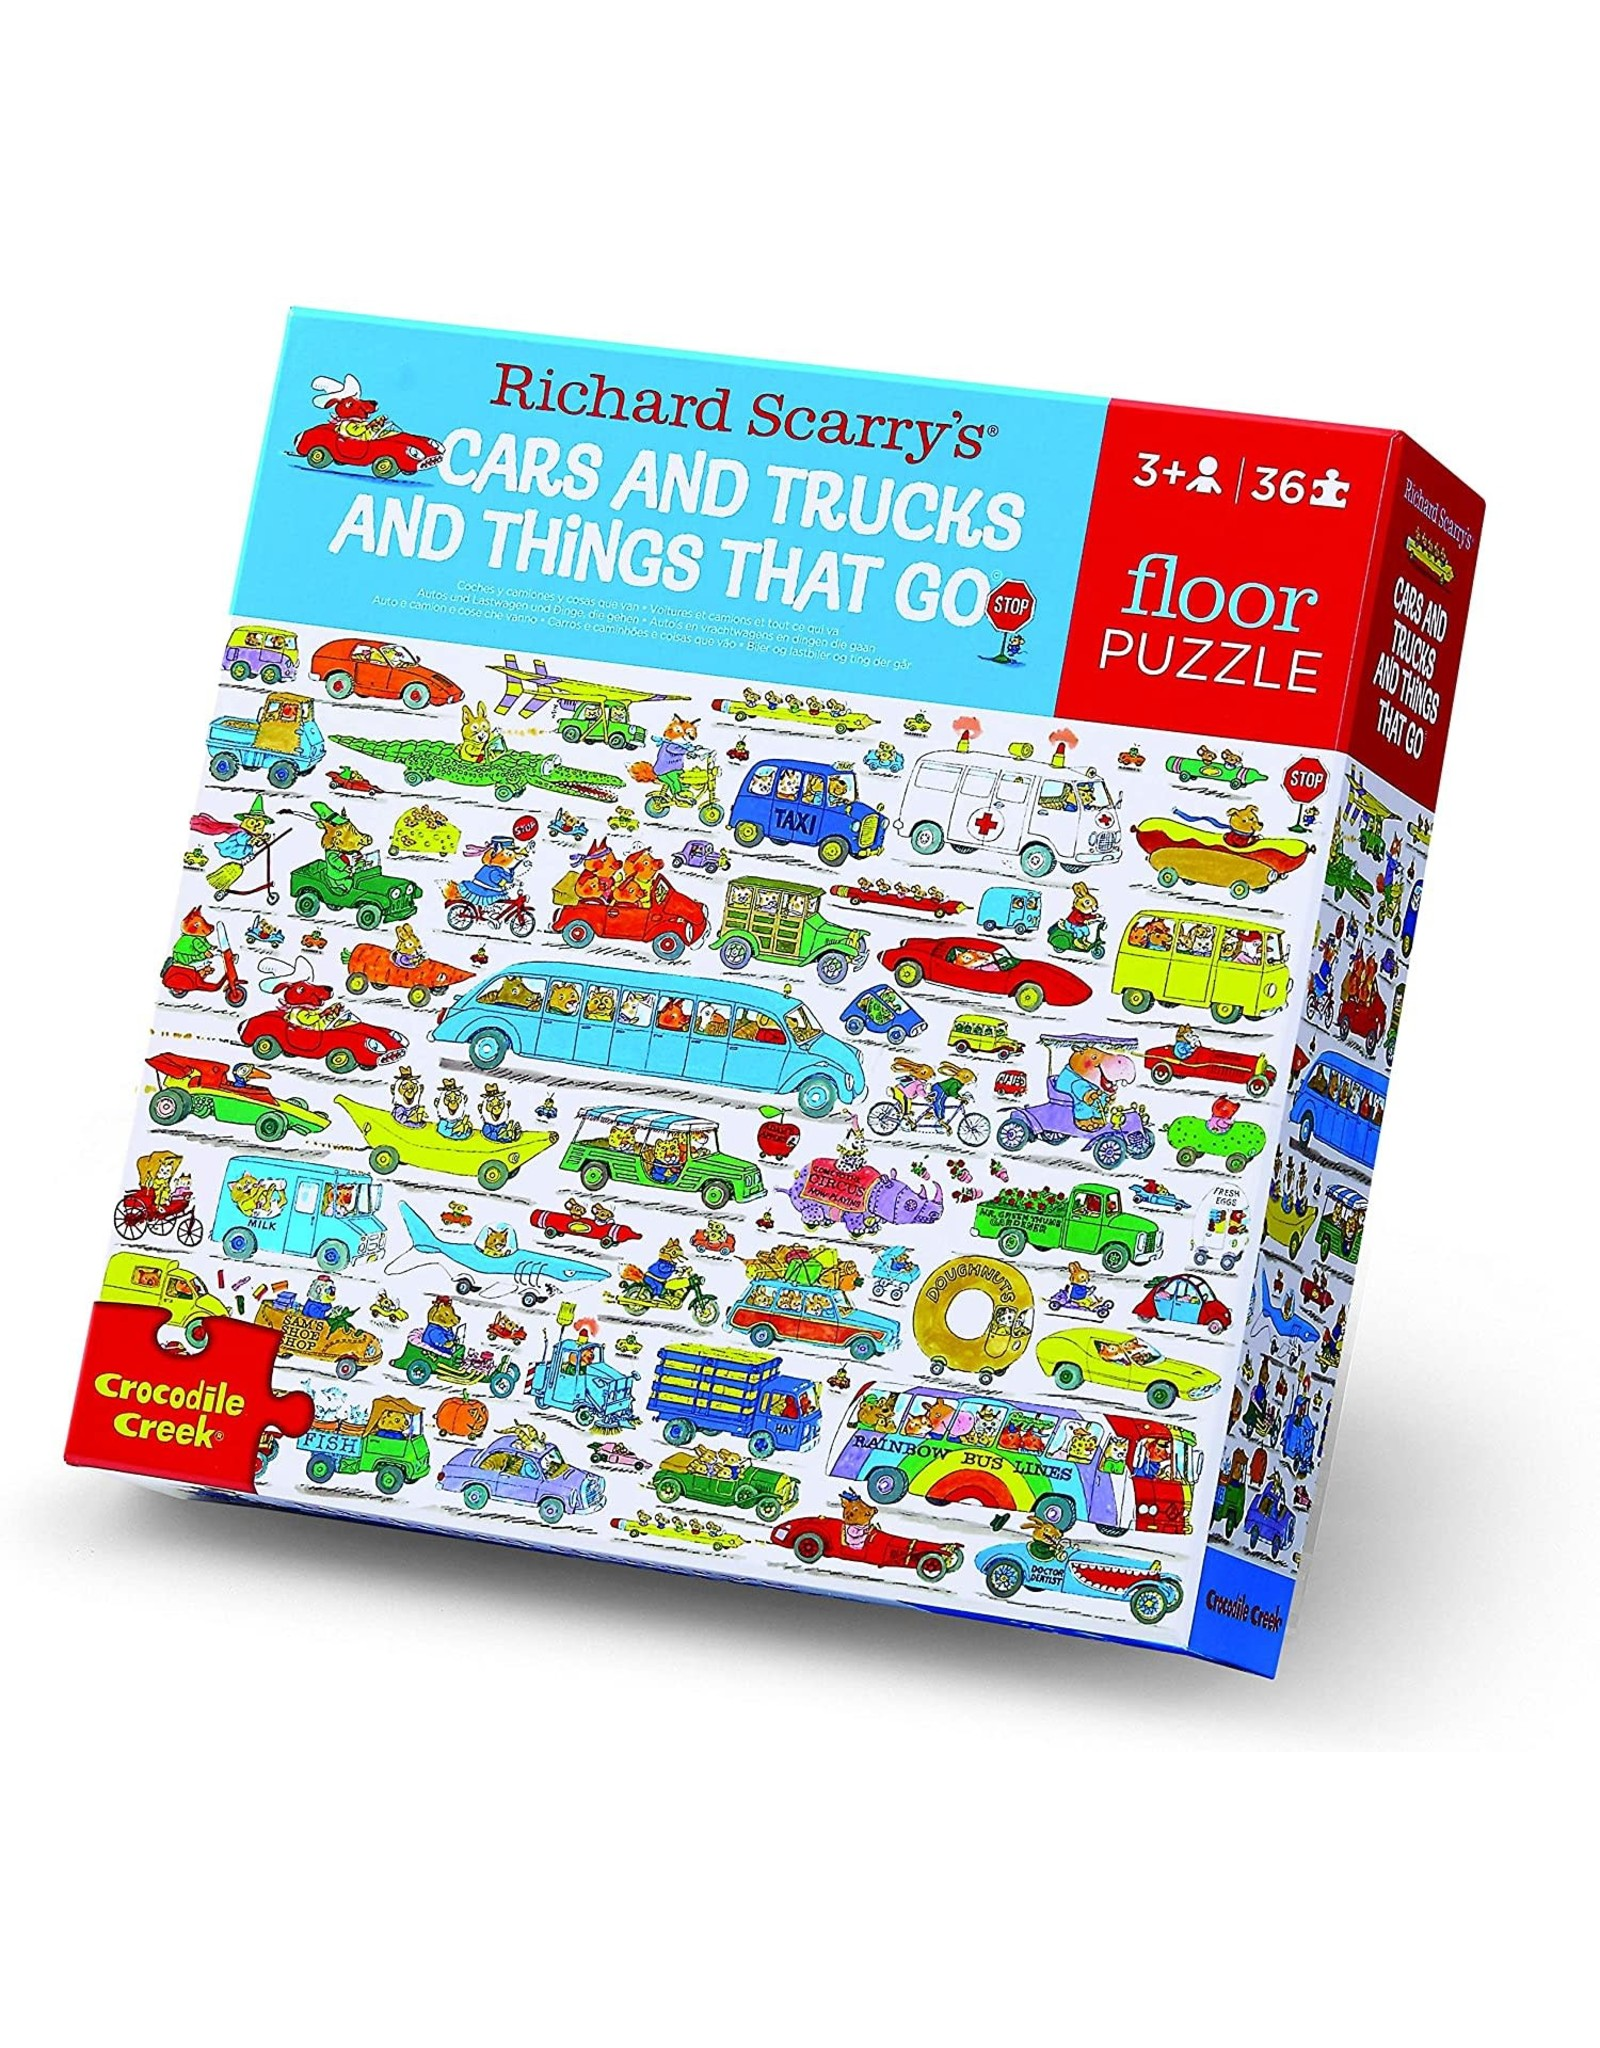 Crocodile Creek Richard Scarry's Cars & Trucks and Things That Go 36pc Floor Puzzle